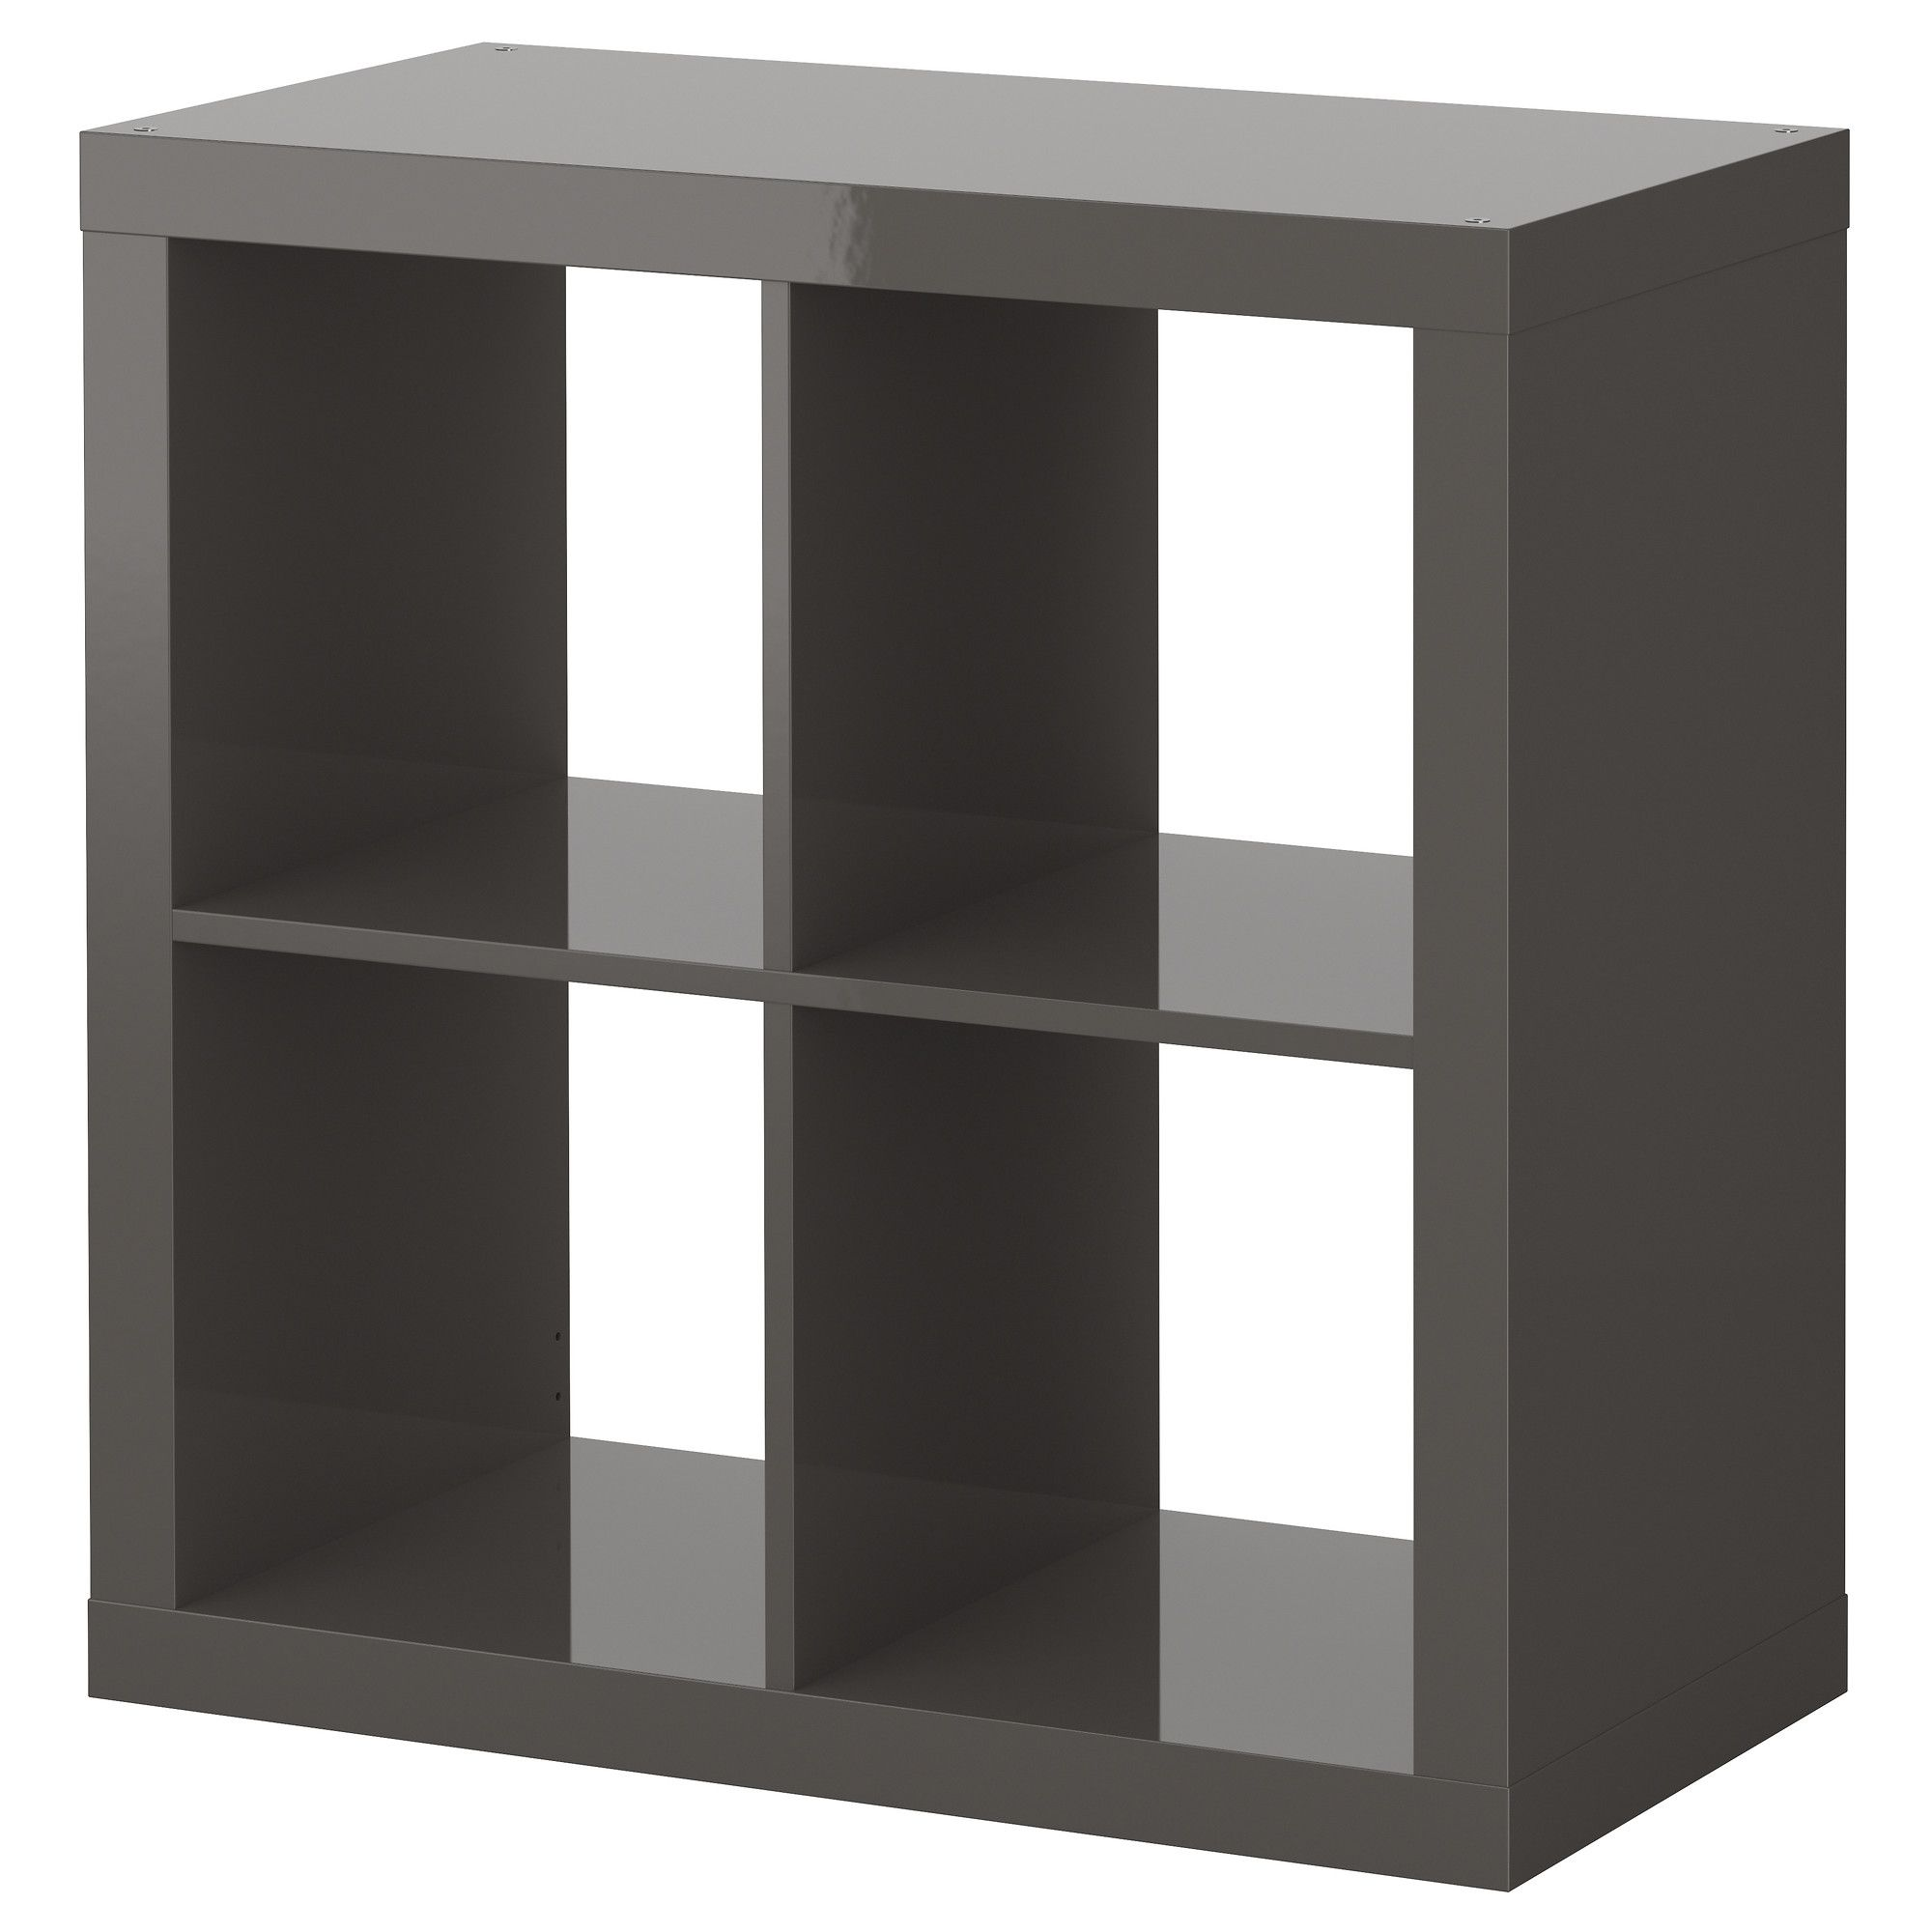 EXPEDIT Shelving unit high gloss grey IKEA